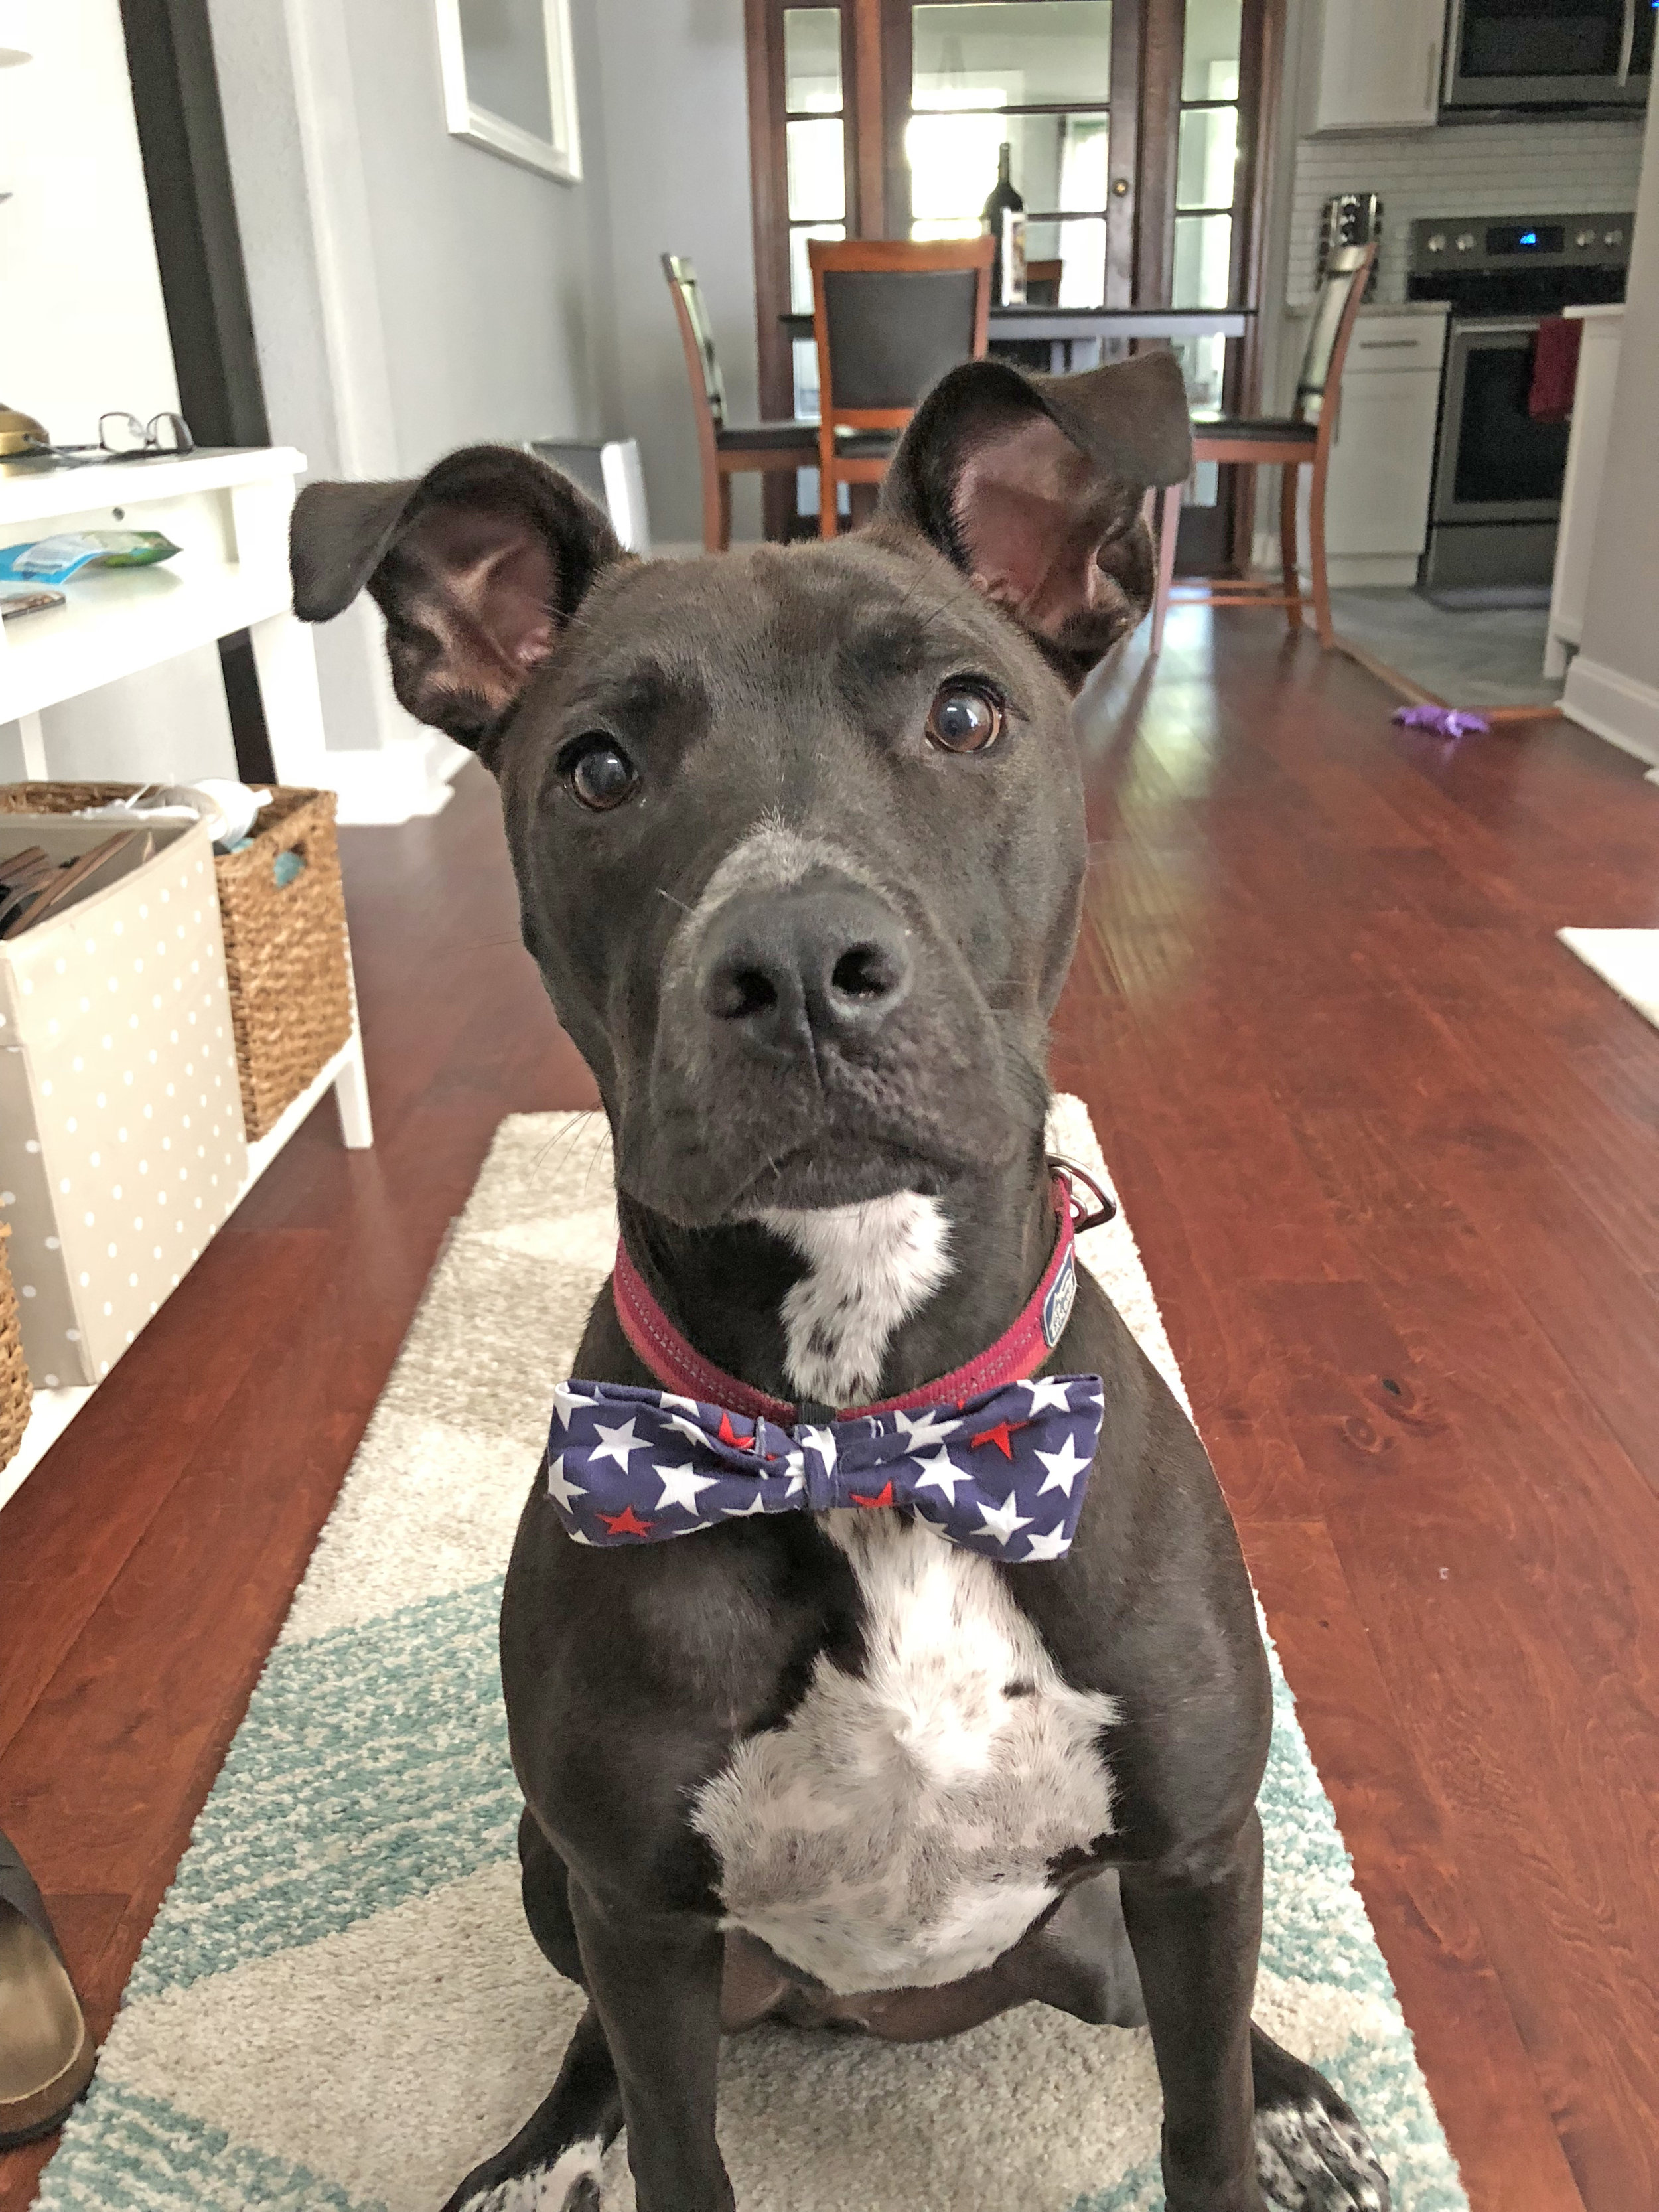 Cedric, our dog, sporting a bow tie